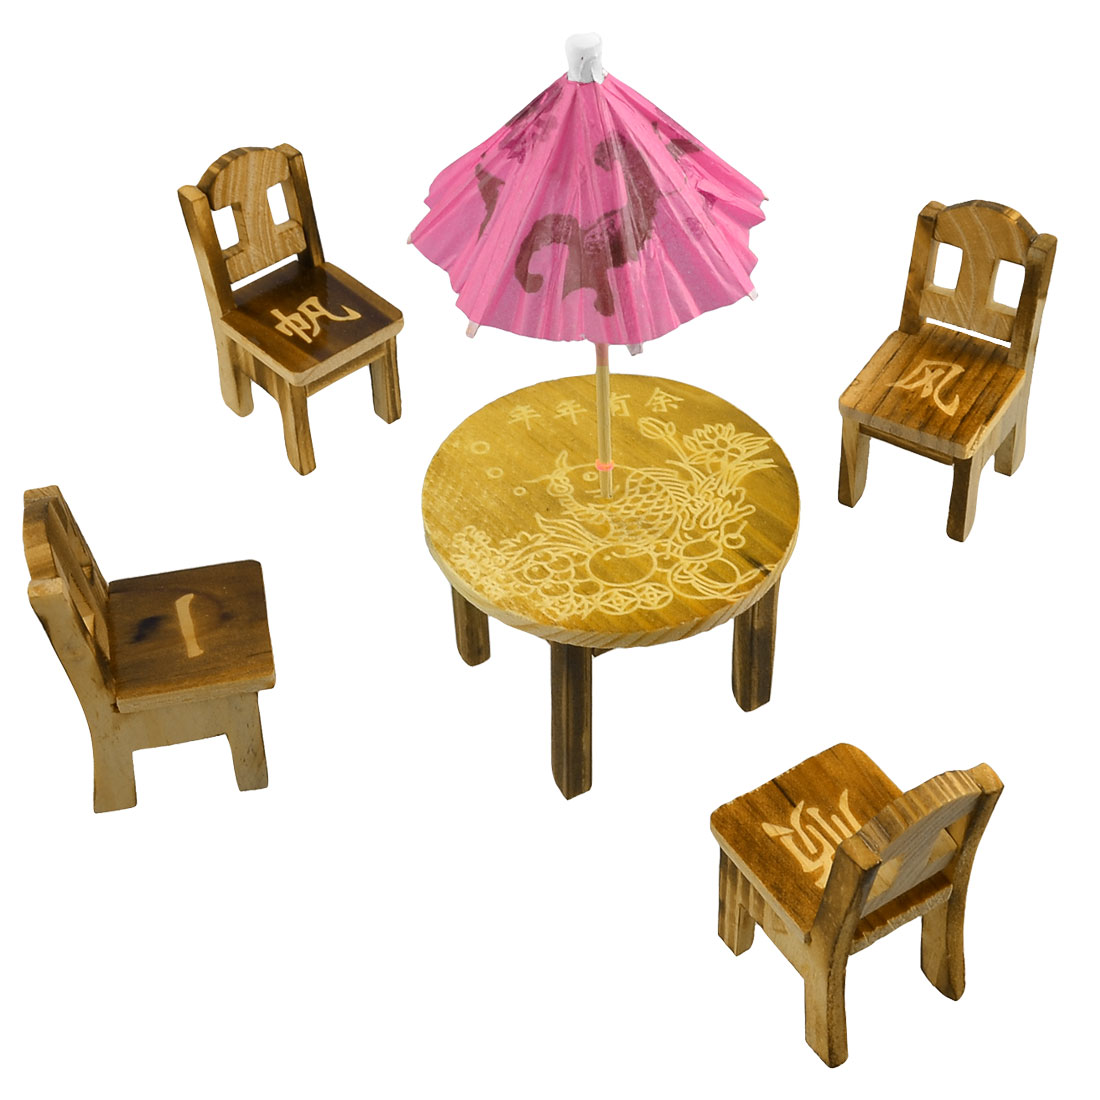 Chinese Delicate Fish Pattern Wooden Chair Table Umbrella Set Toy